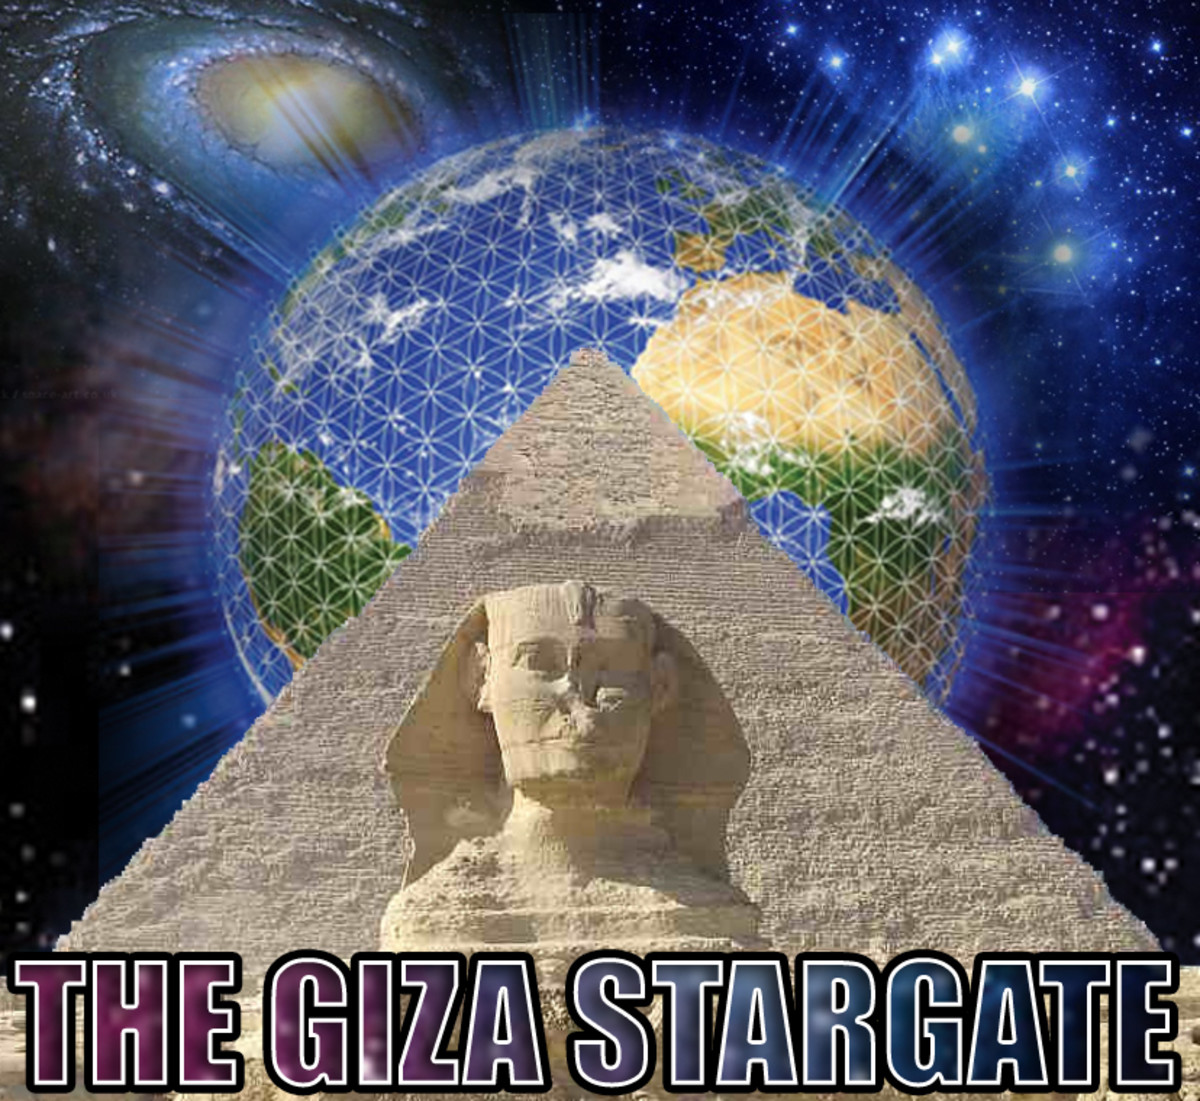 Giza Pyramid & The Sphinx Their True History and Purpose